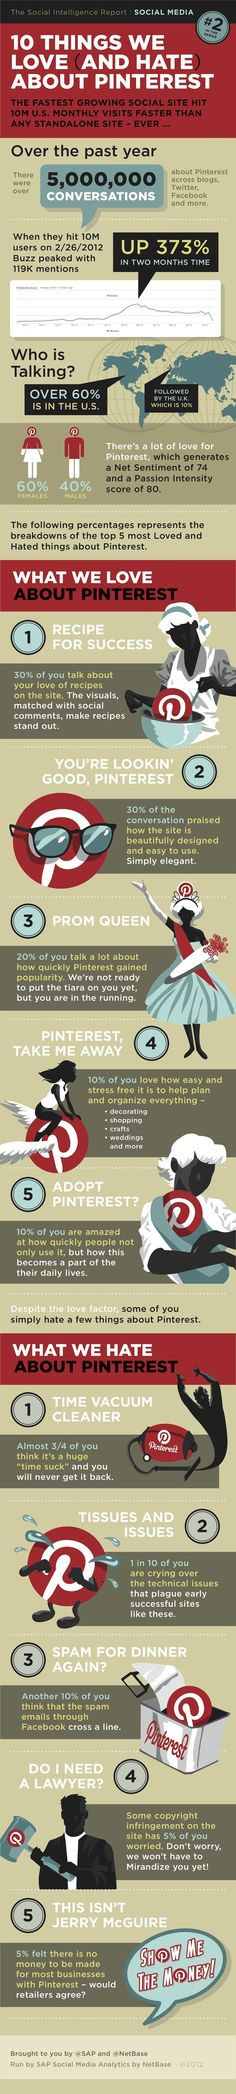 10 Things People Hate And Love About Pinterest![Infographic]